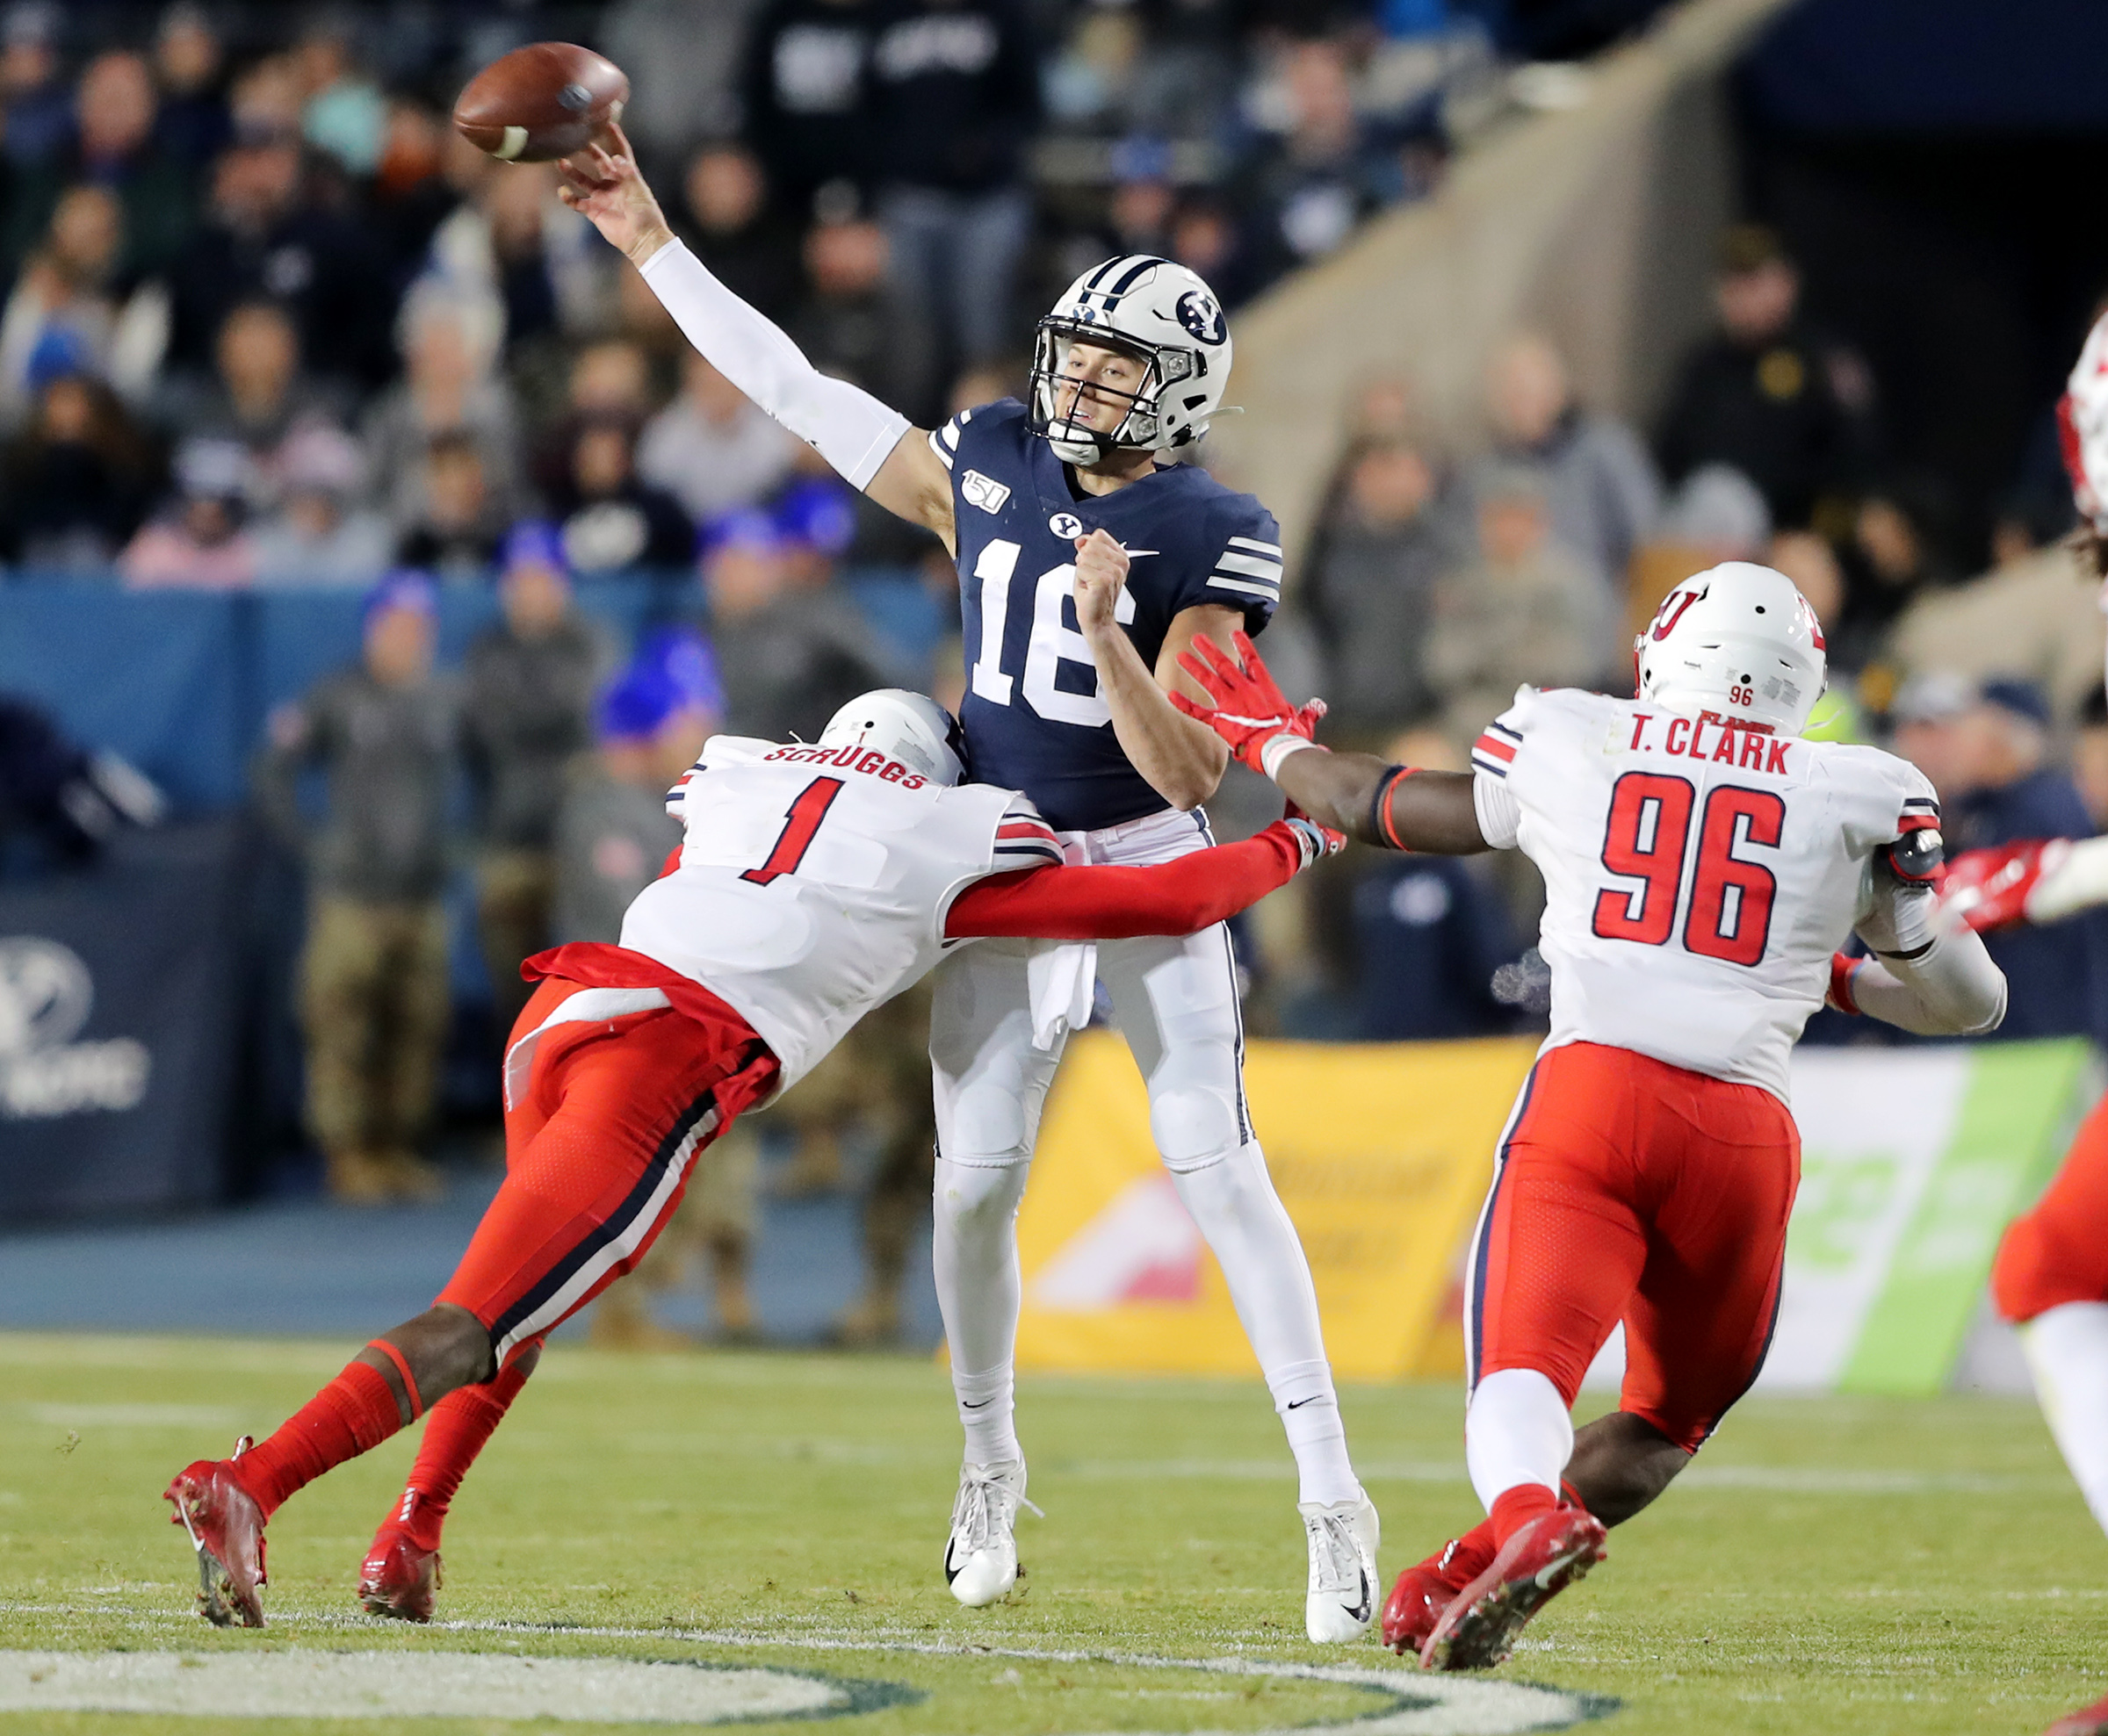 Brigham Young Cougars quarterback Baylor Romney (16) throws the ball as he is hit by Liberty Flames cornerback Javon Scruggs (1) BYU and Liberty play an NCAA football game in Provo, Utah on Saturday, Nov. 9, 2019. BYU won 31-24.